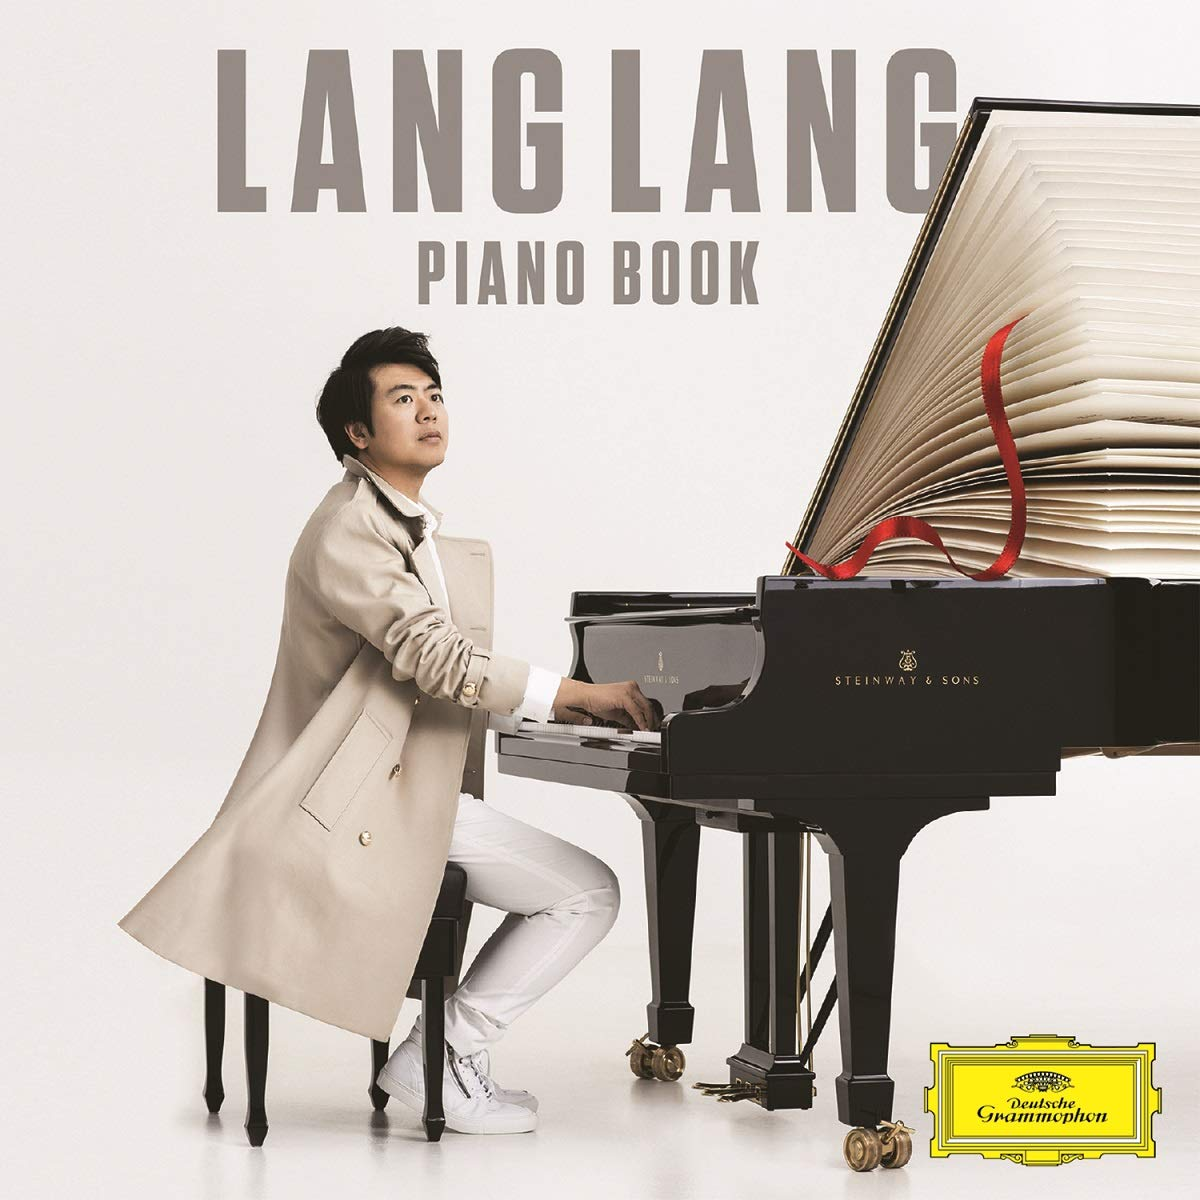 The Piano Book - Lang Lang